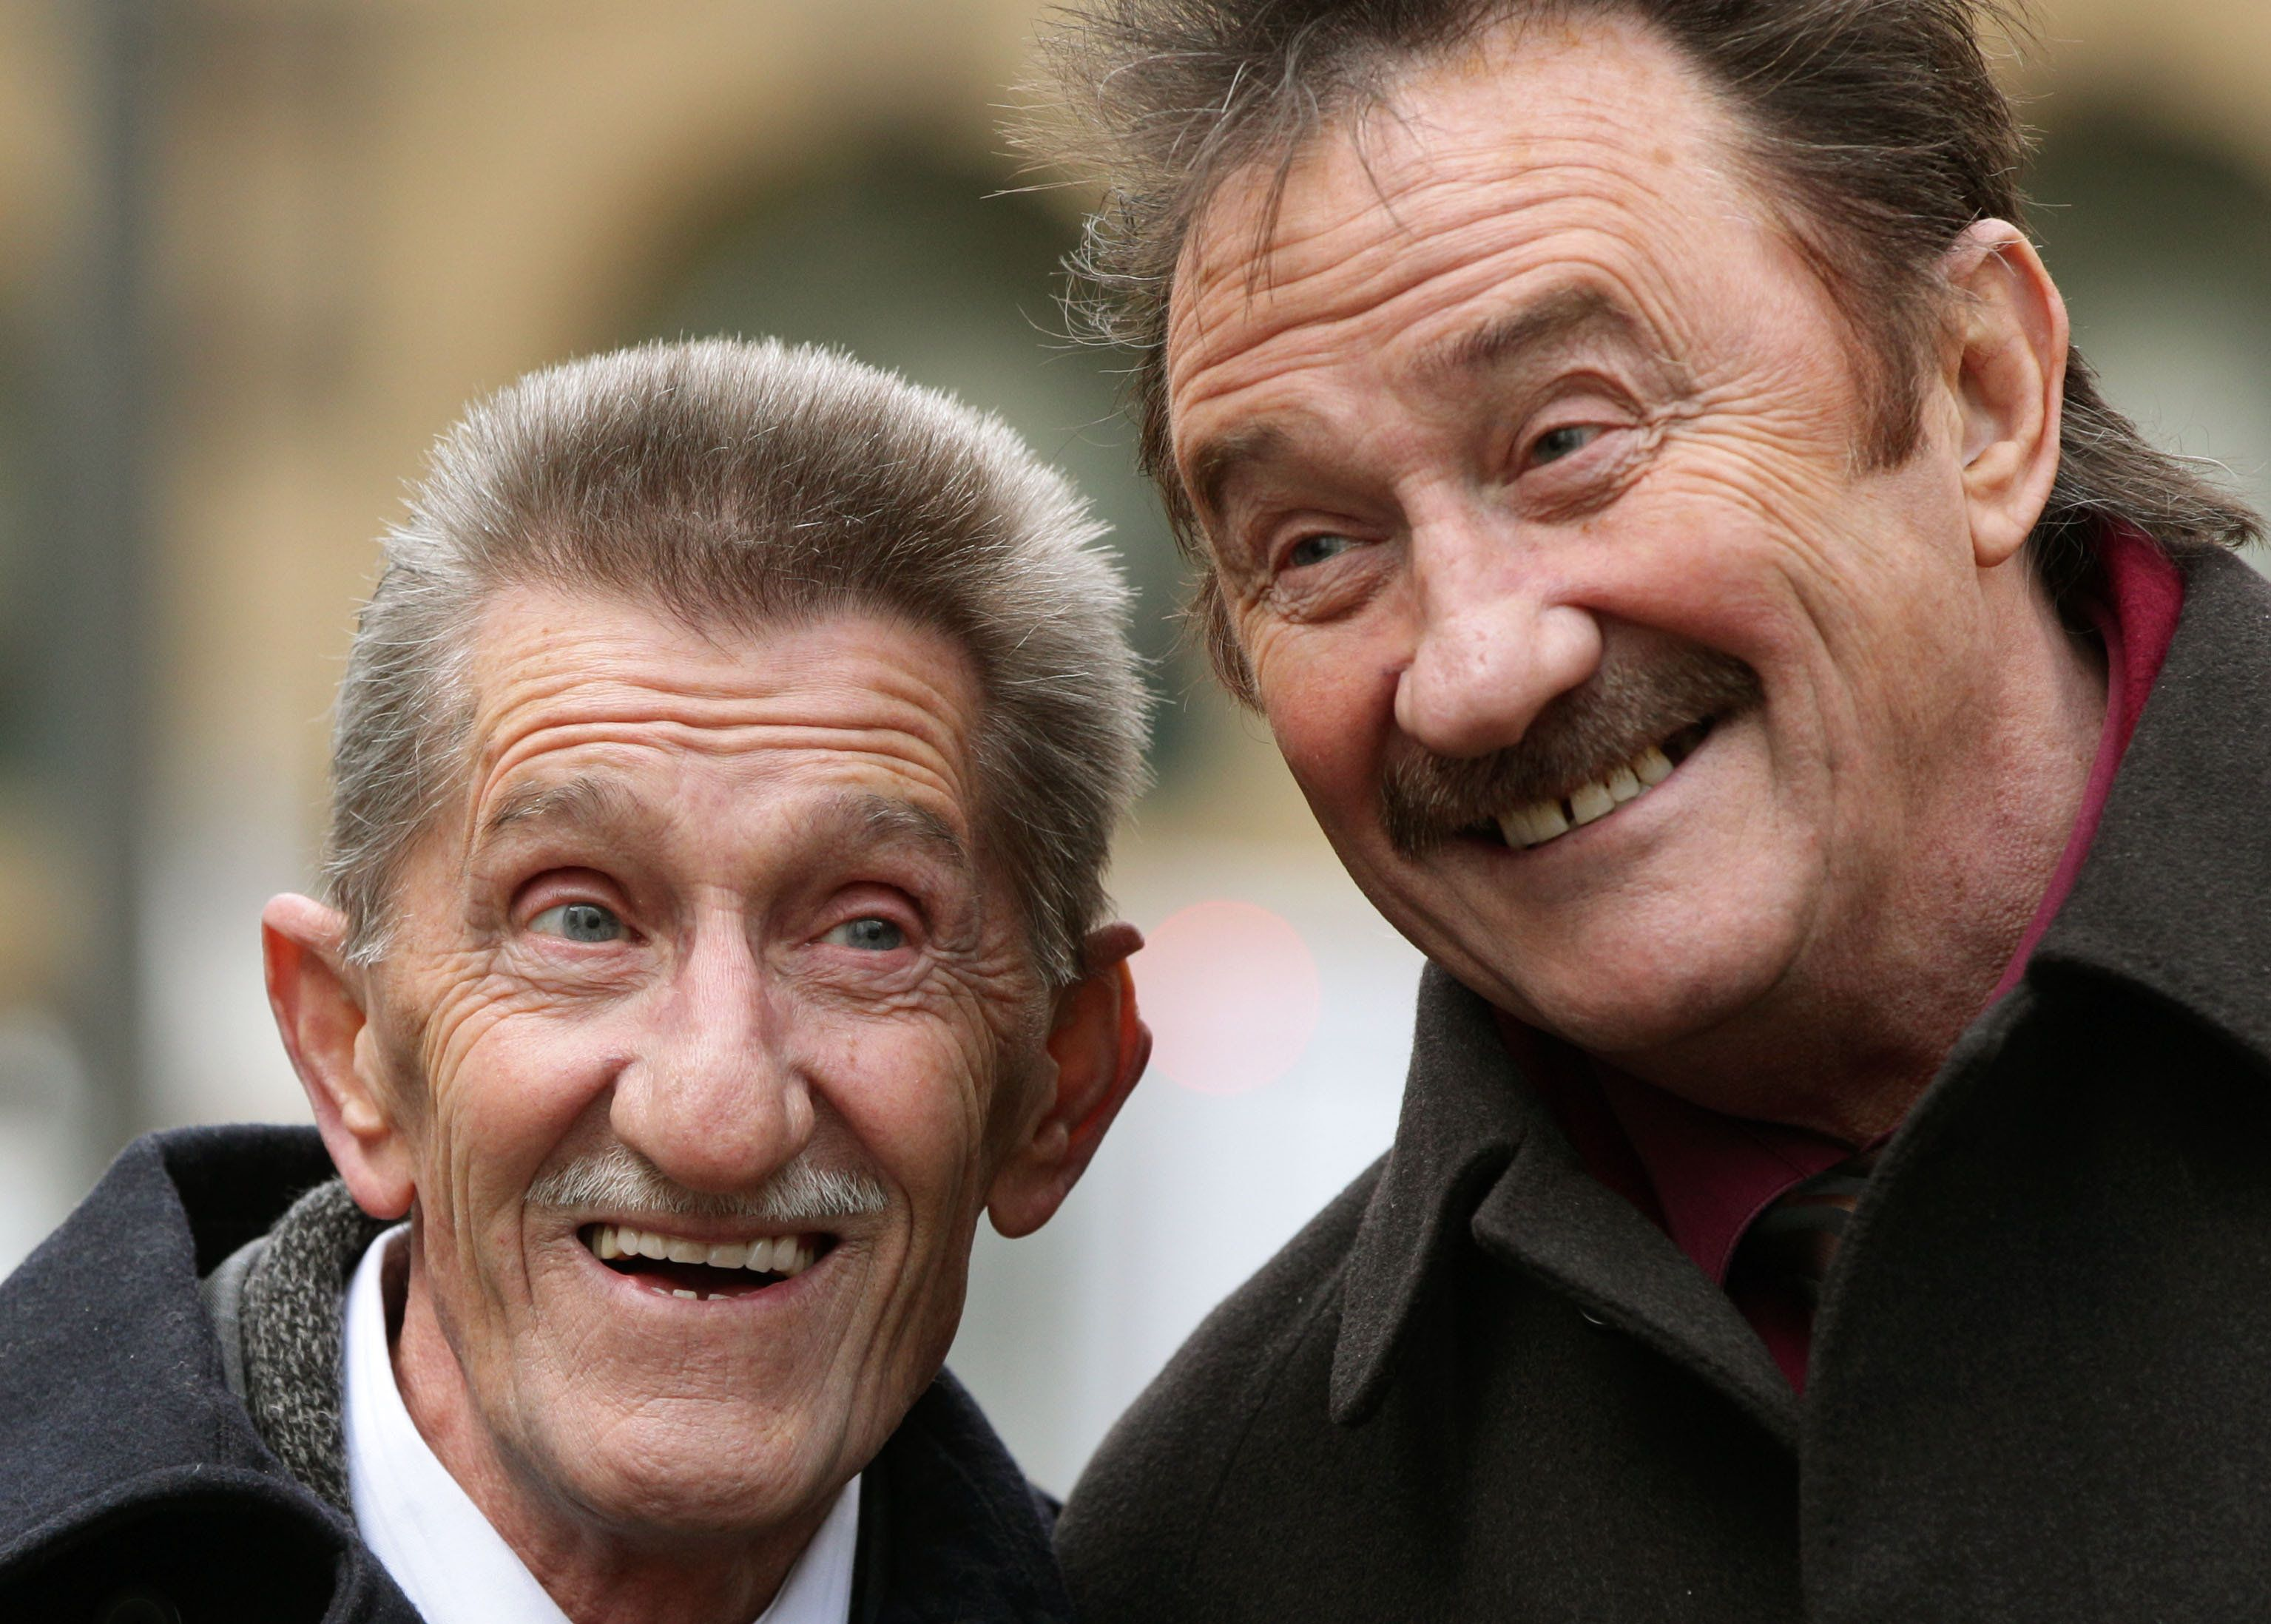 Football Fans Pay Tribute To Barry Chuckle With 'To Me, To You' Chant As Paul Chuckle Watches